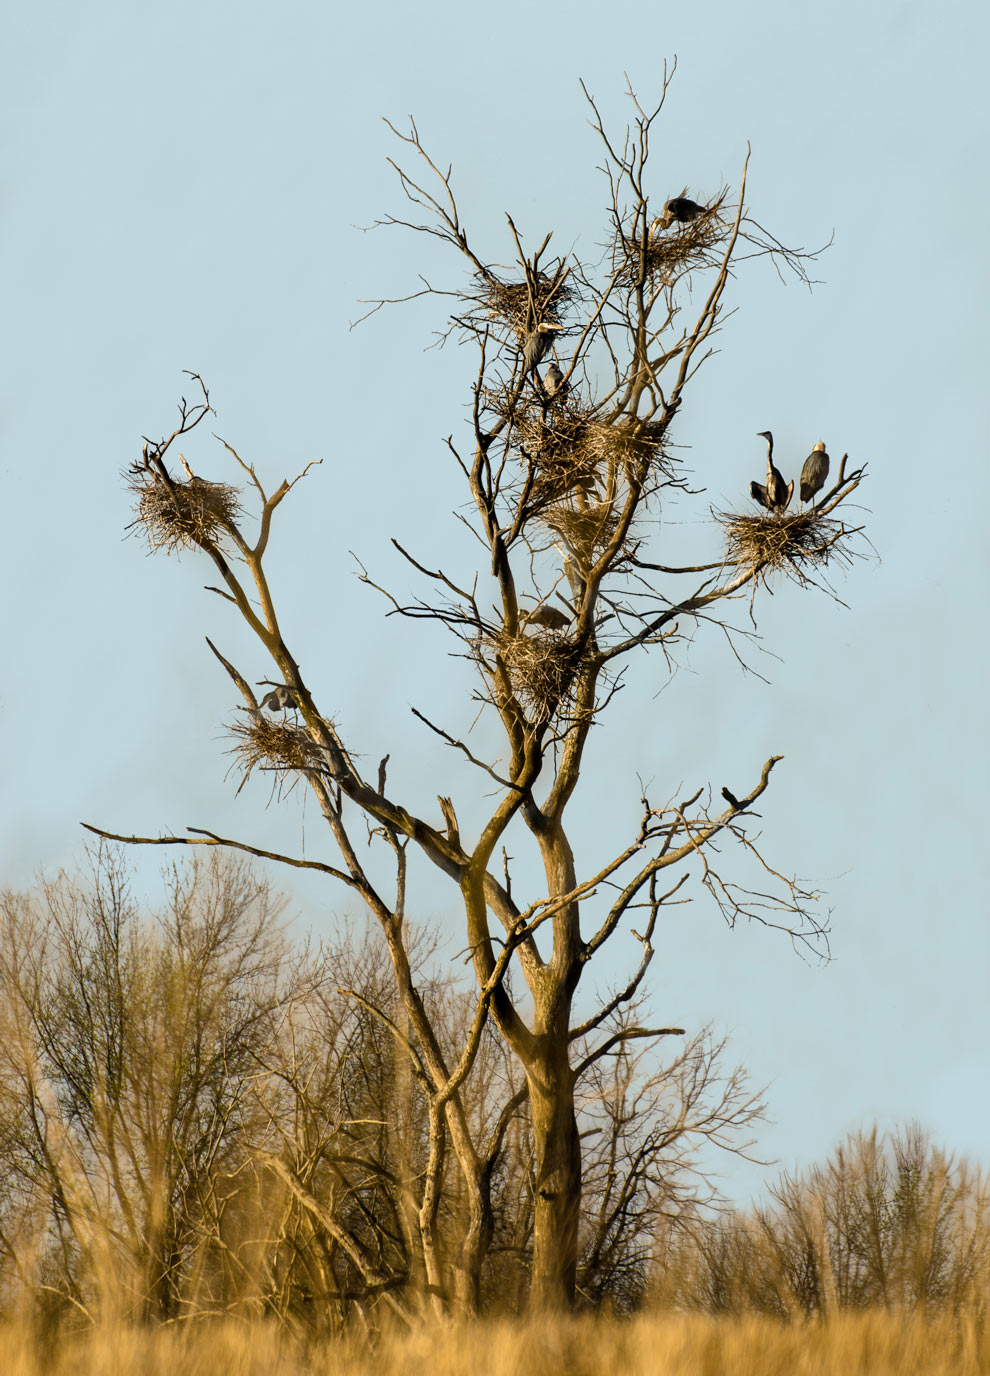 Great blue herons nest in a rookery at Pickerington Ponds Metro Park